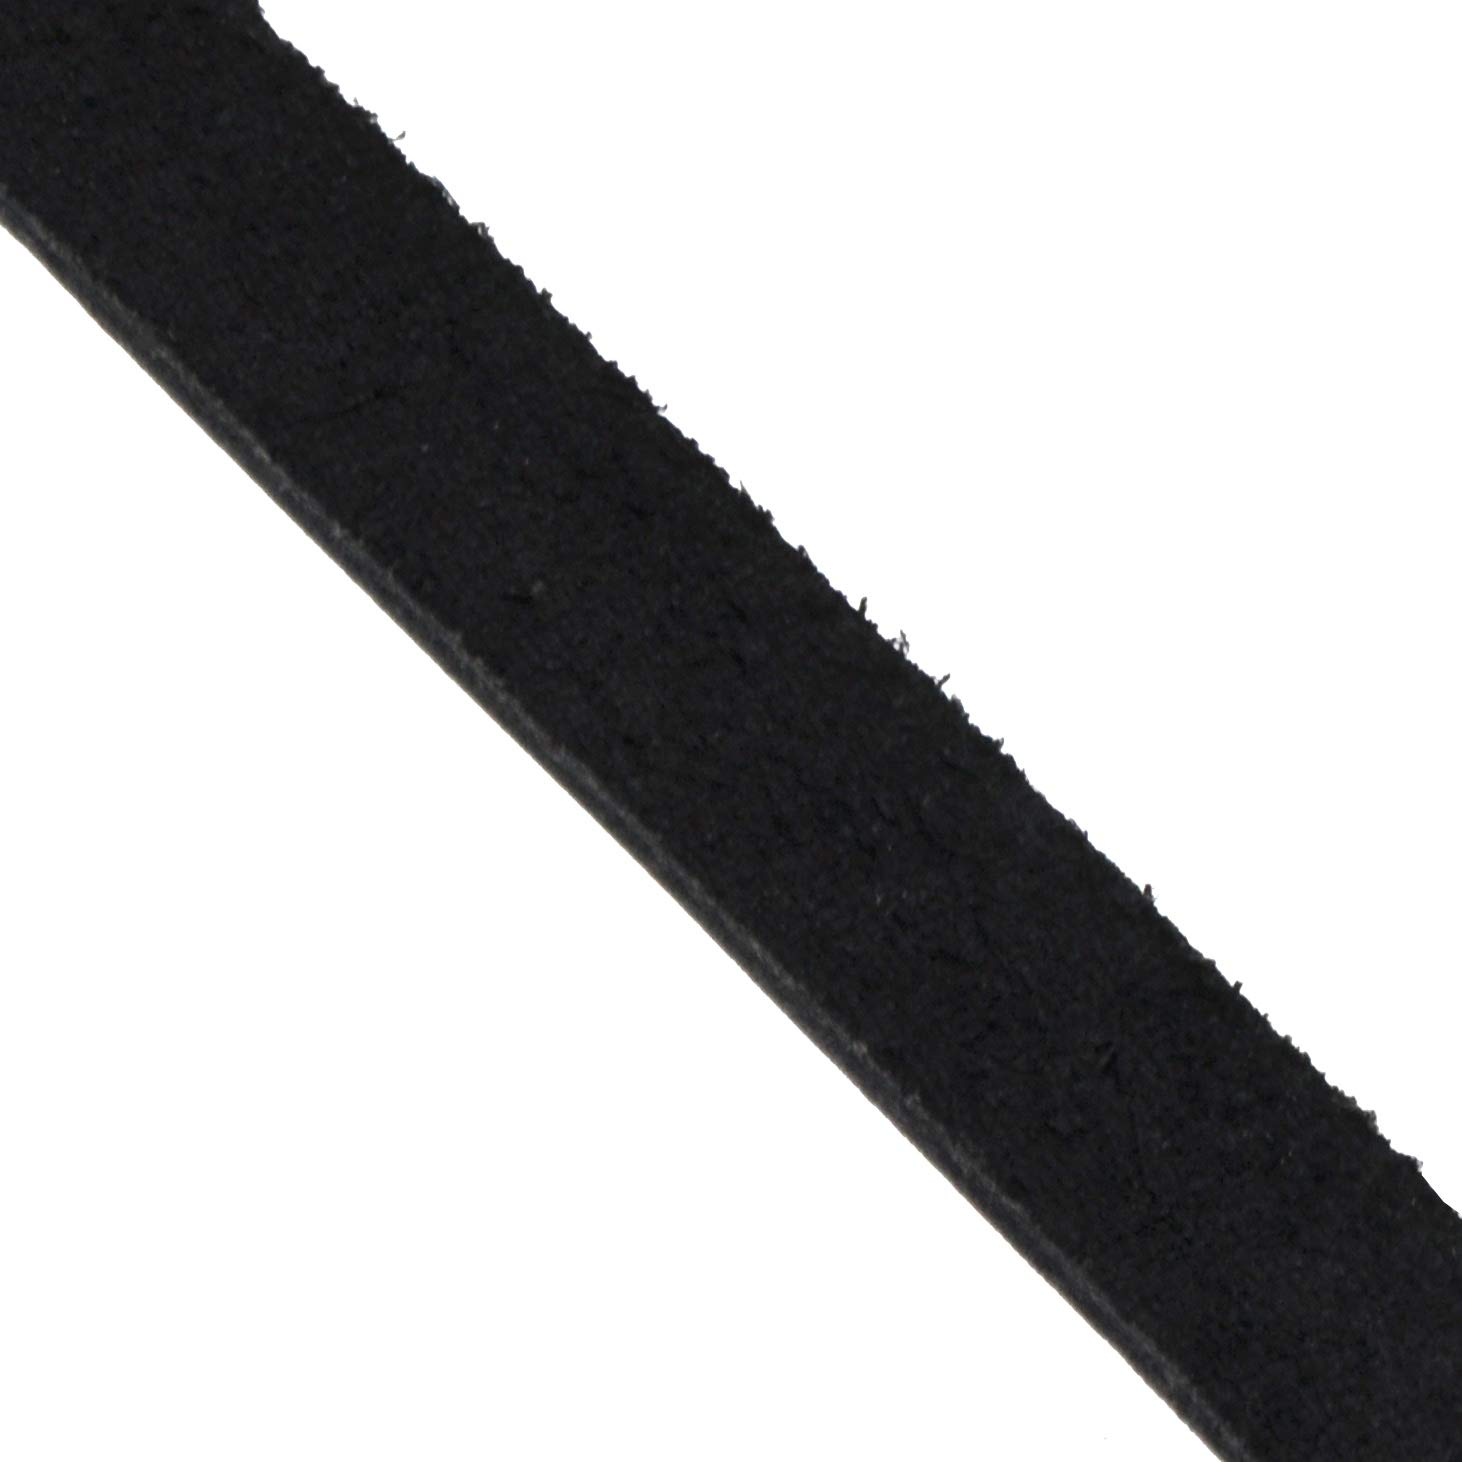 Drawer Pulls 1//2 Inch Wide, 72 Inches Long, Black Ribbons Flat Cowhide Strip Rope for Bags Belts Mandala Craft Genuine Leather Strap Clothing Handle Wraps Jewelry Making